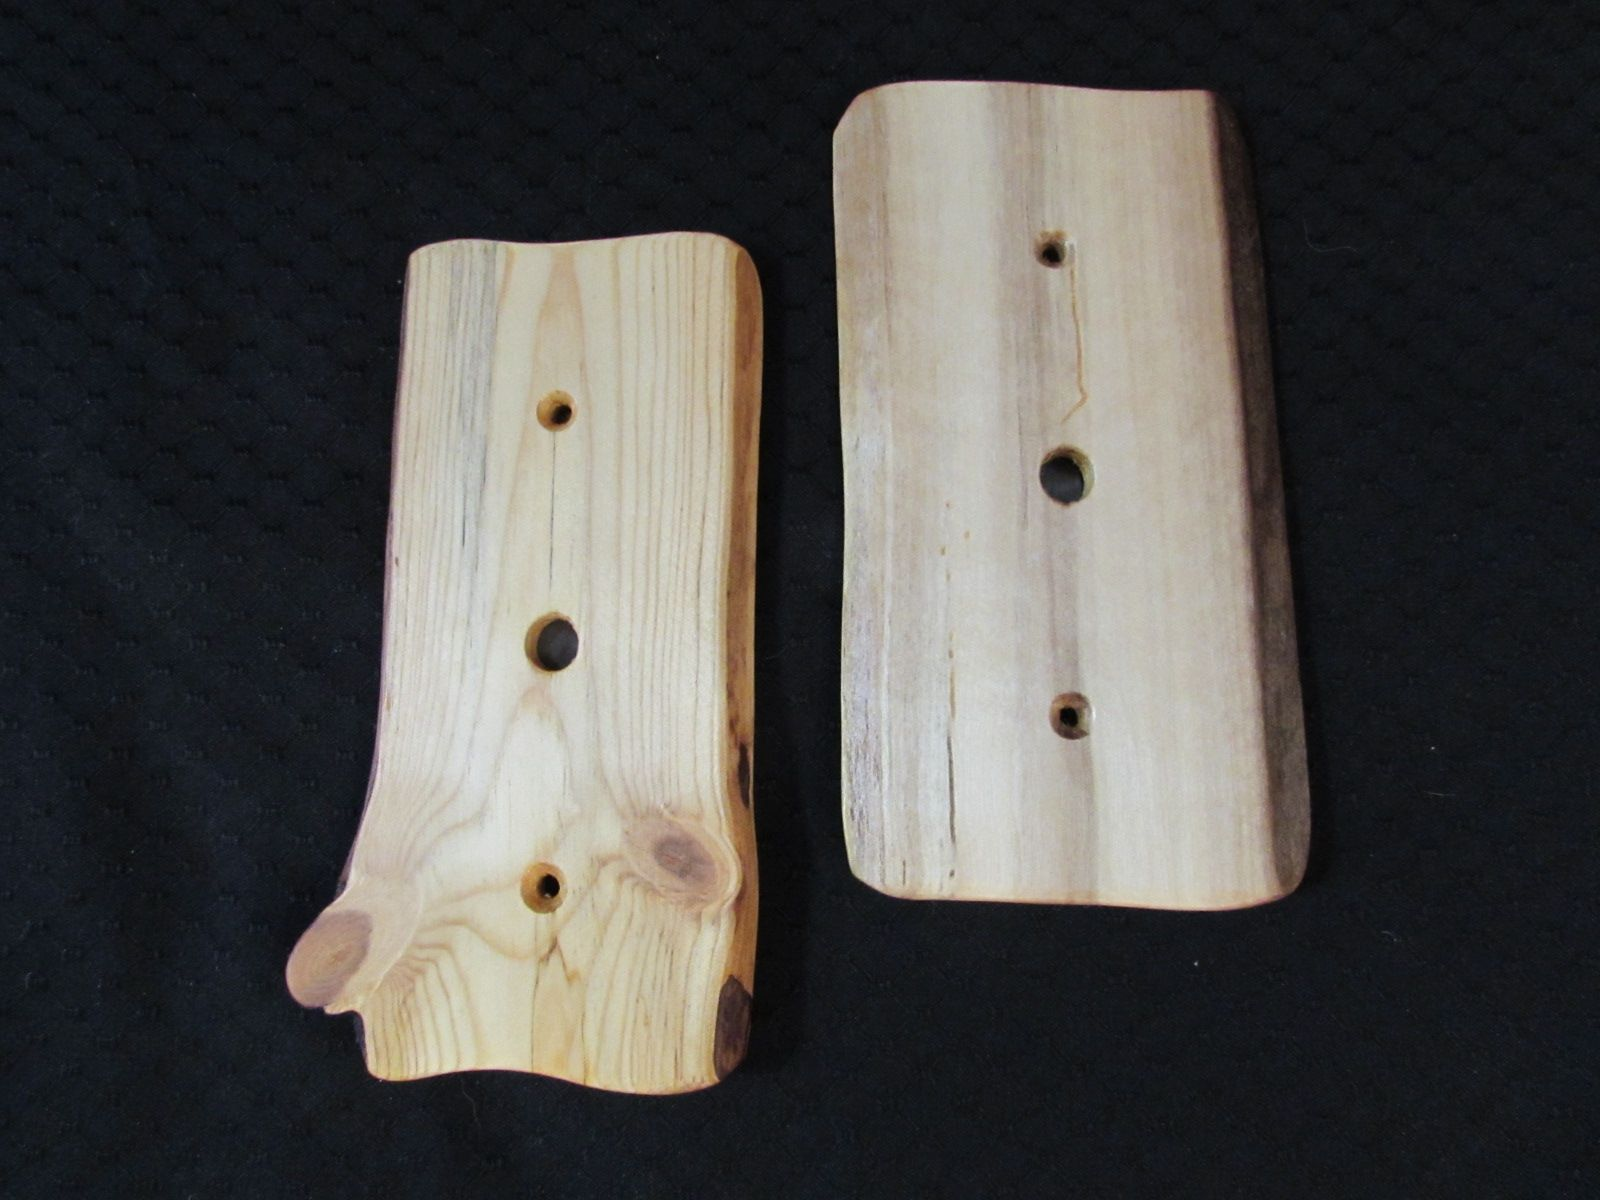 Rustic Wood Cable Plate Covers Plate covers, Log